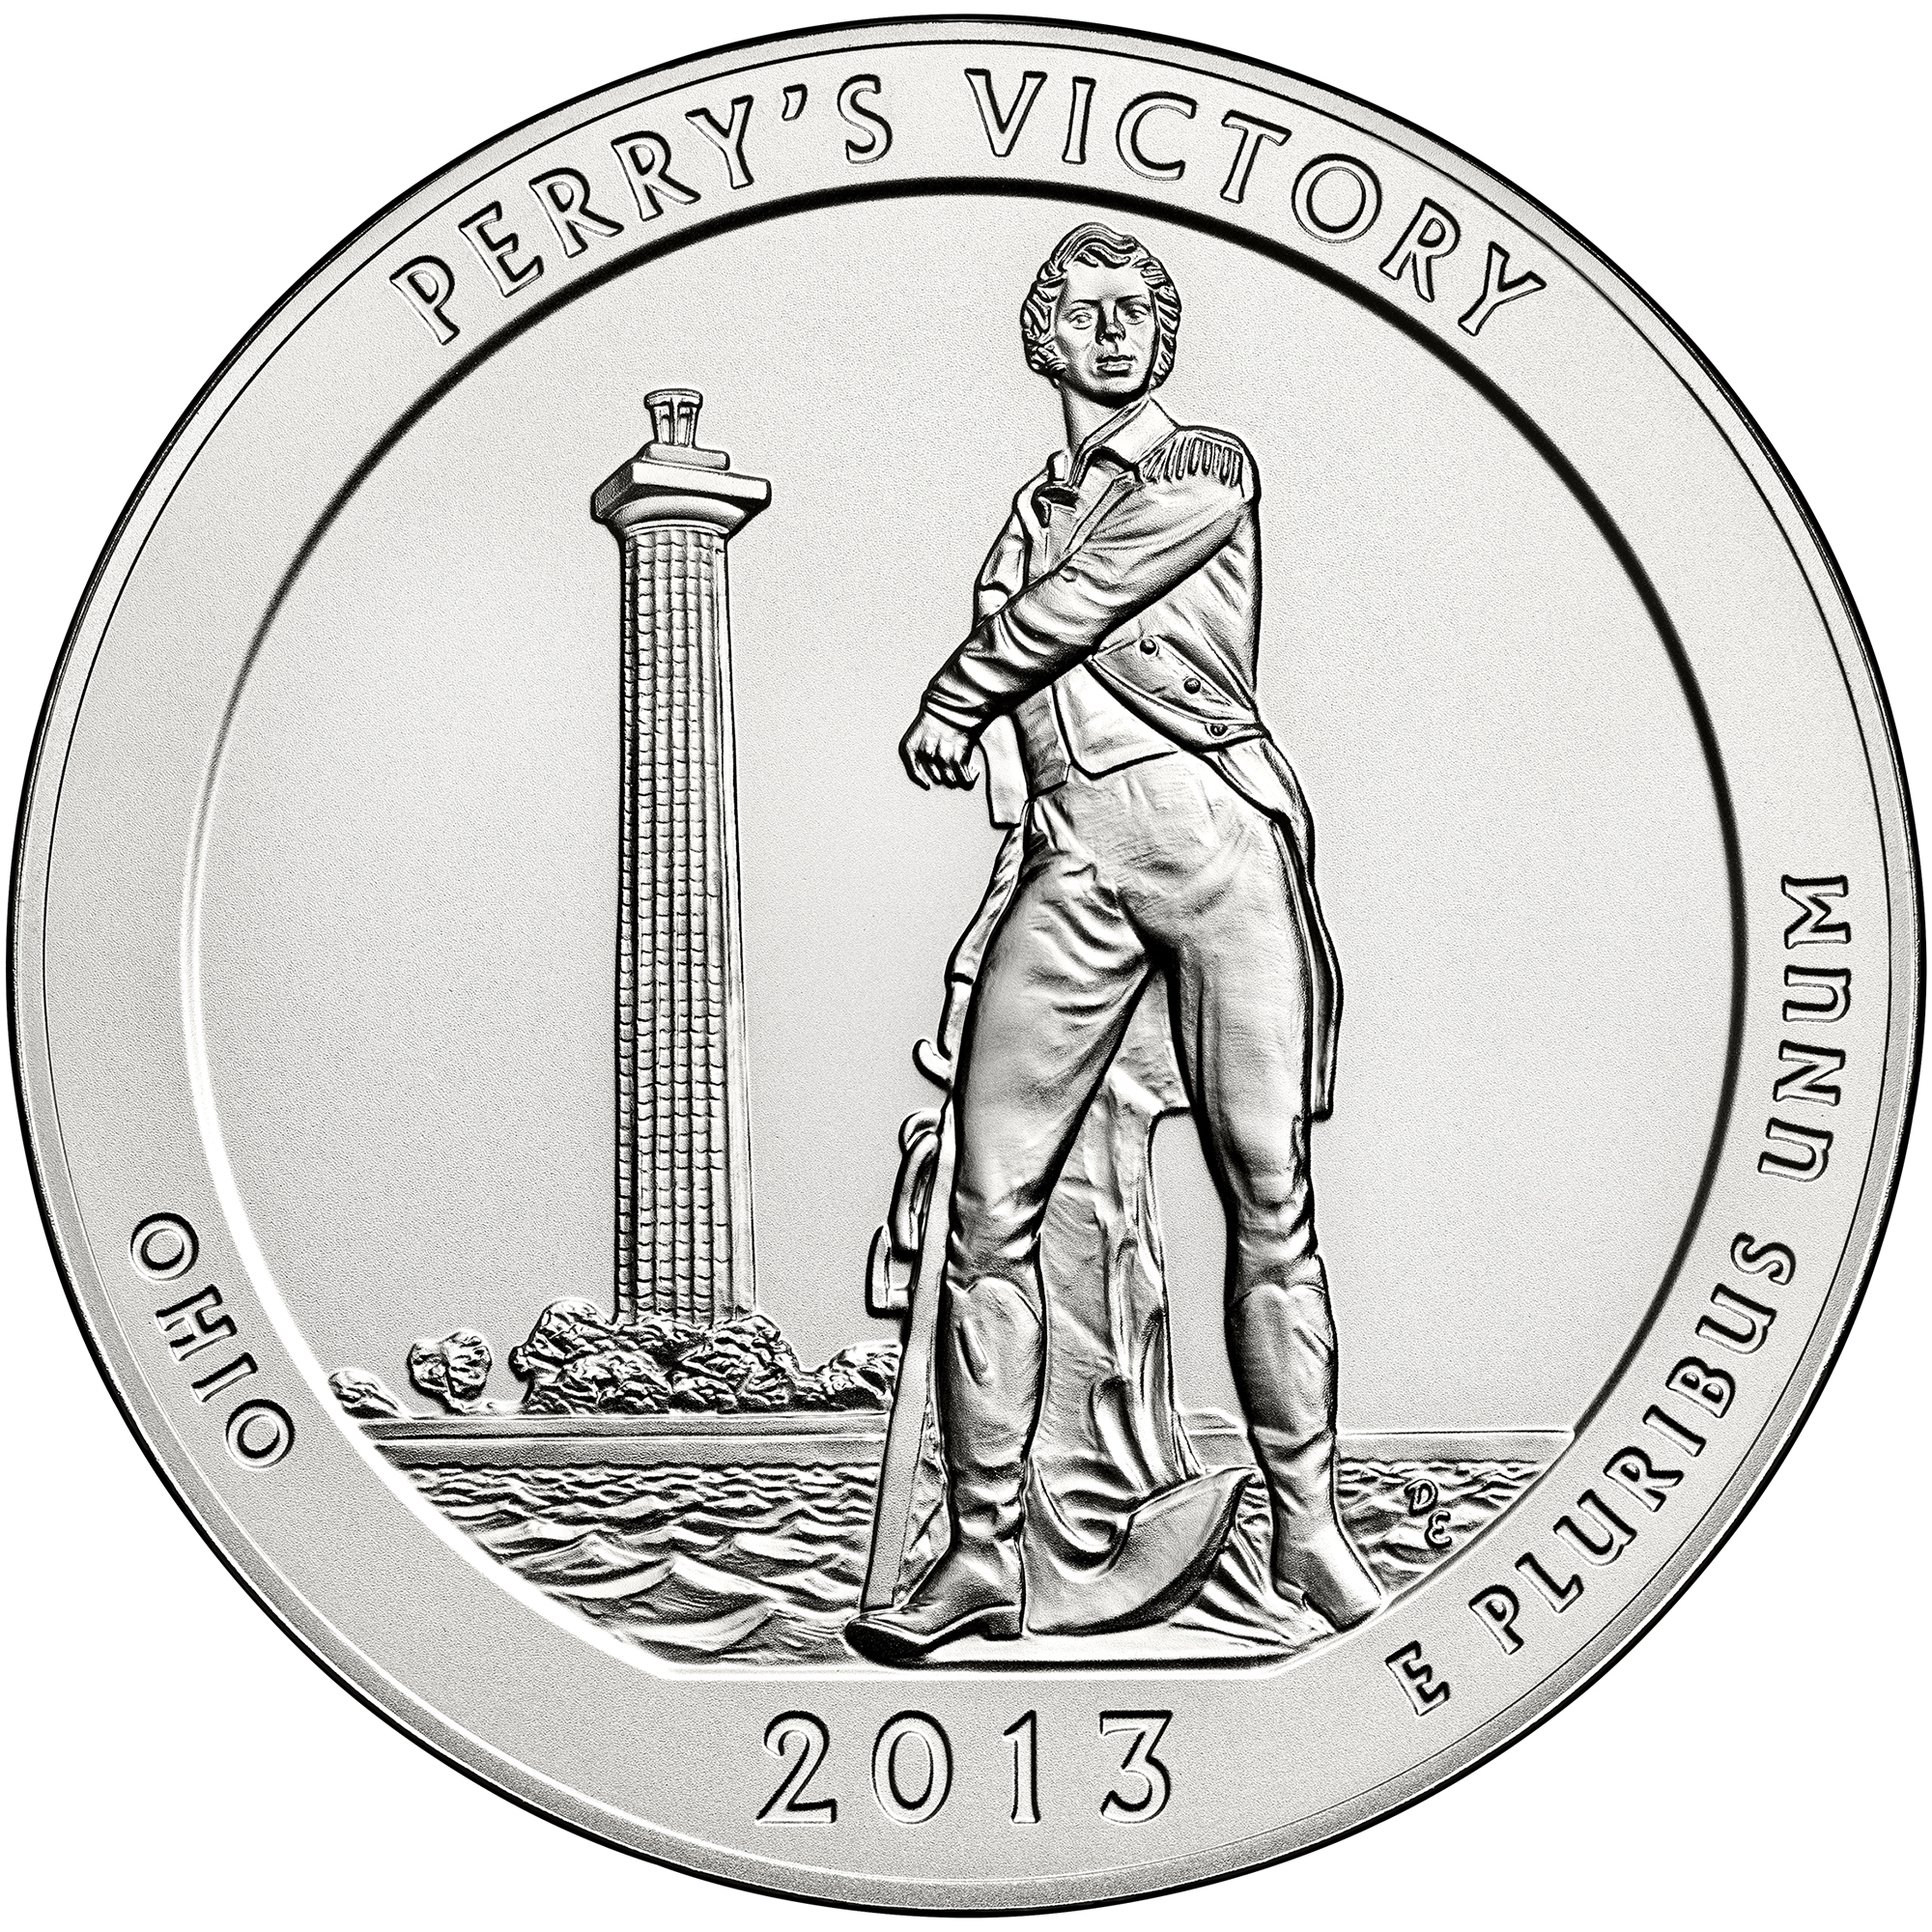 2013 America The Beautiful Quarters Five Ounce Silver Uncirculated Coin Perrys Victory Ohio Reverse